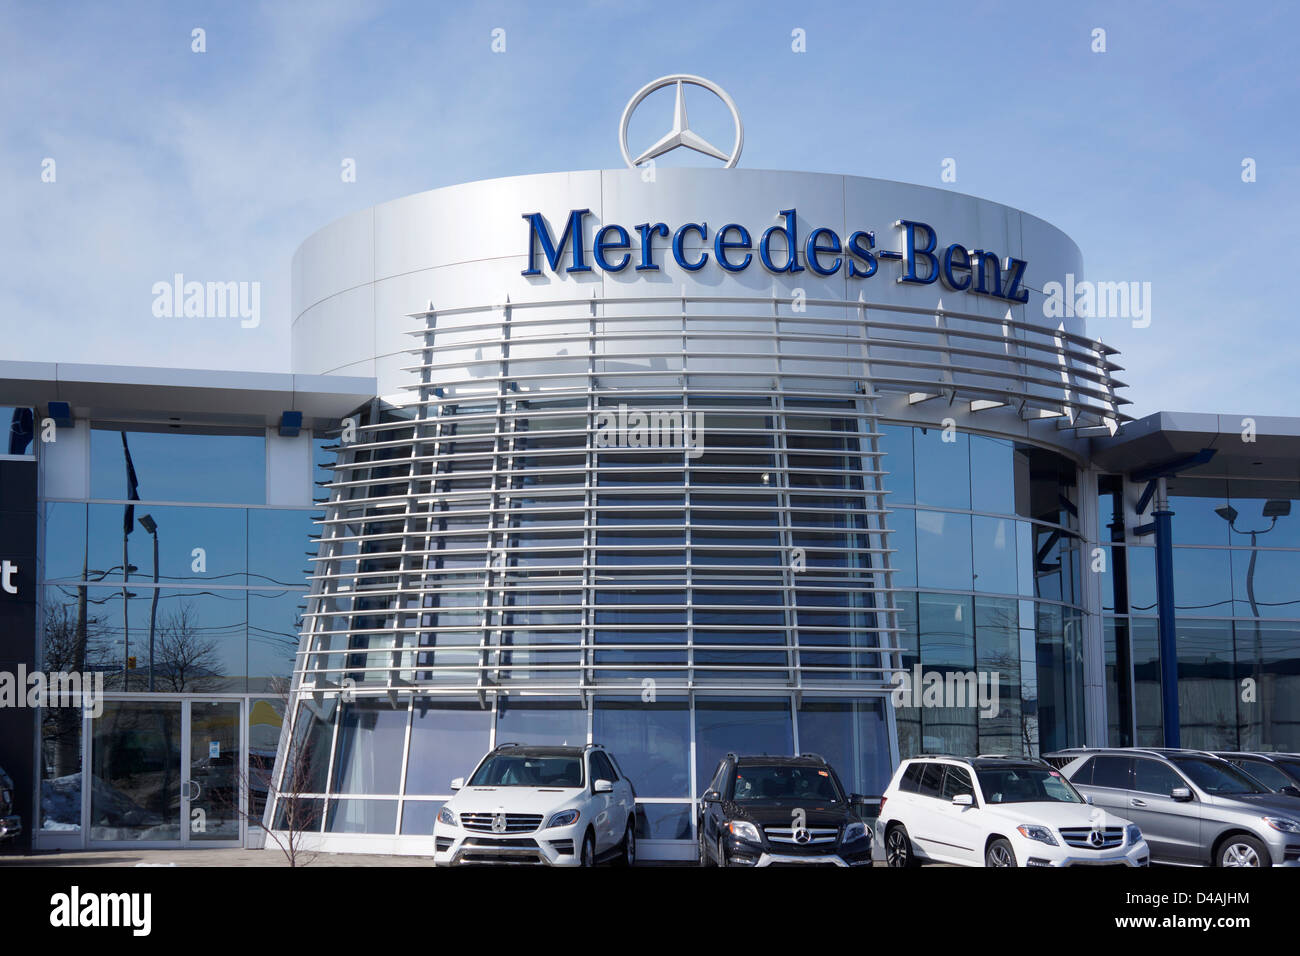 mercedes benz dealership ontario canada stock photo